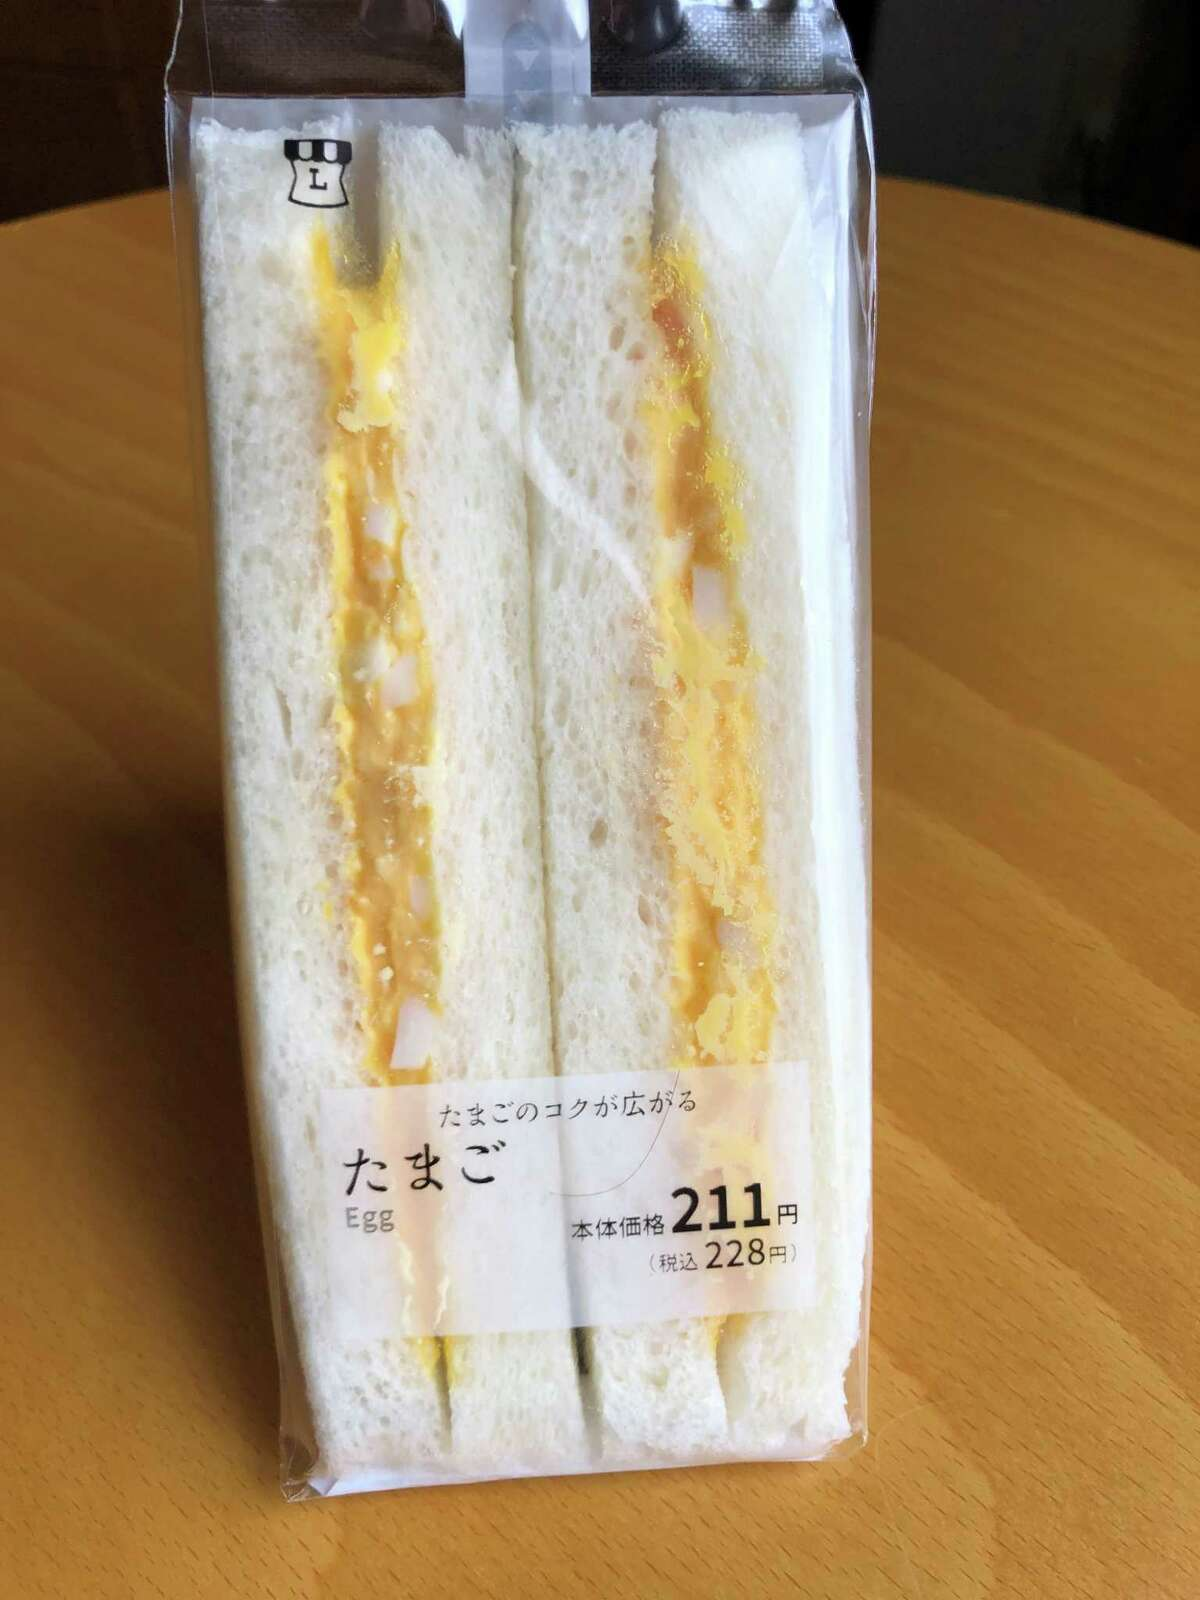 Nothing could be better than an egg-salad sandwich in a Saitama, Japan, hotel room before or after covering the Olympics.